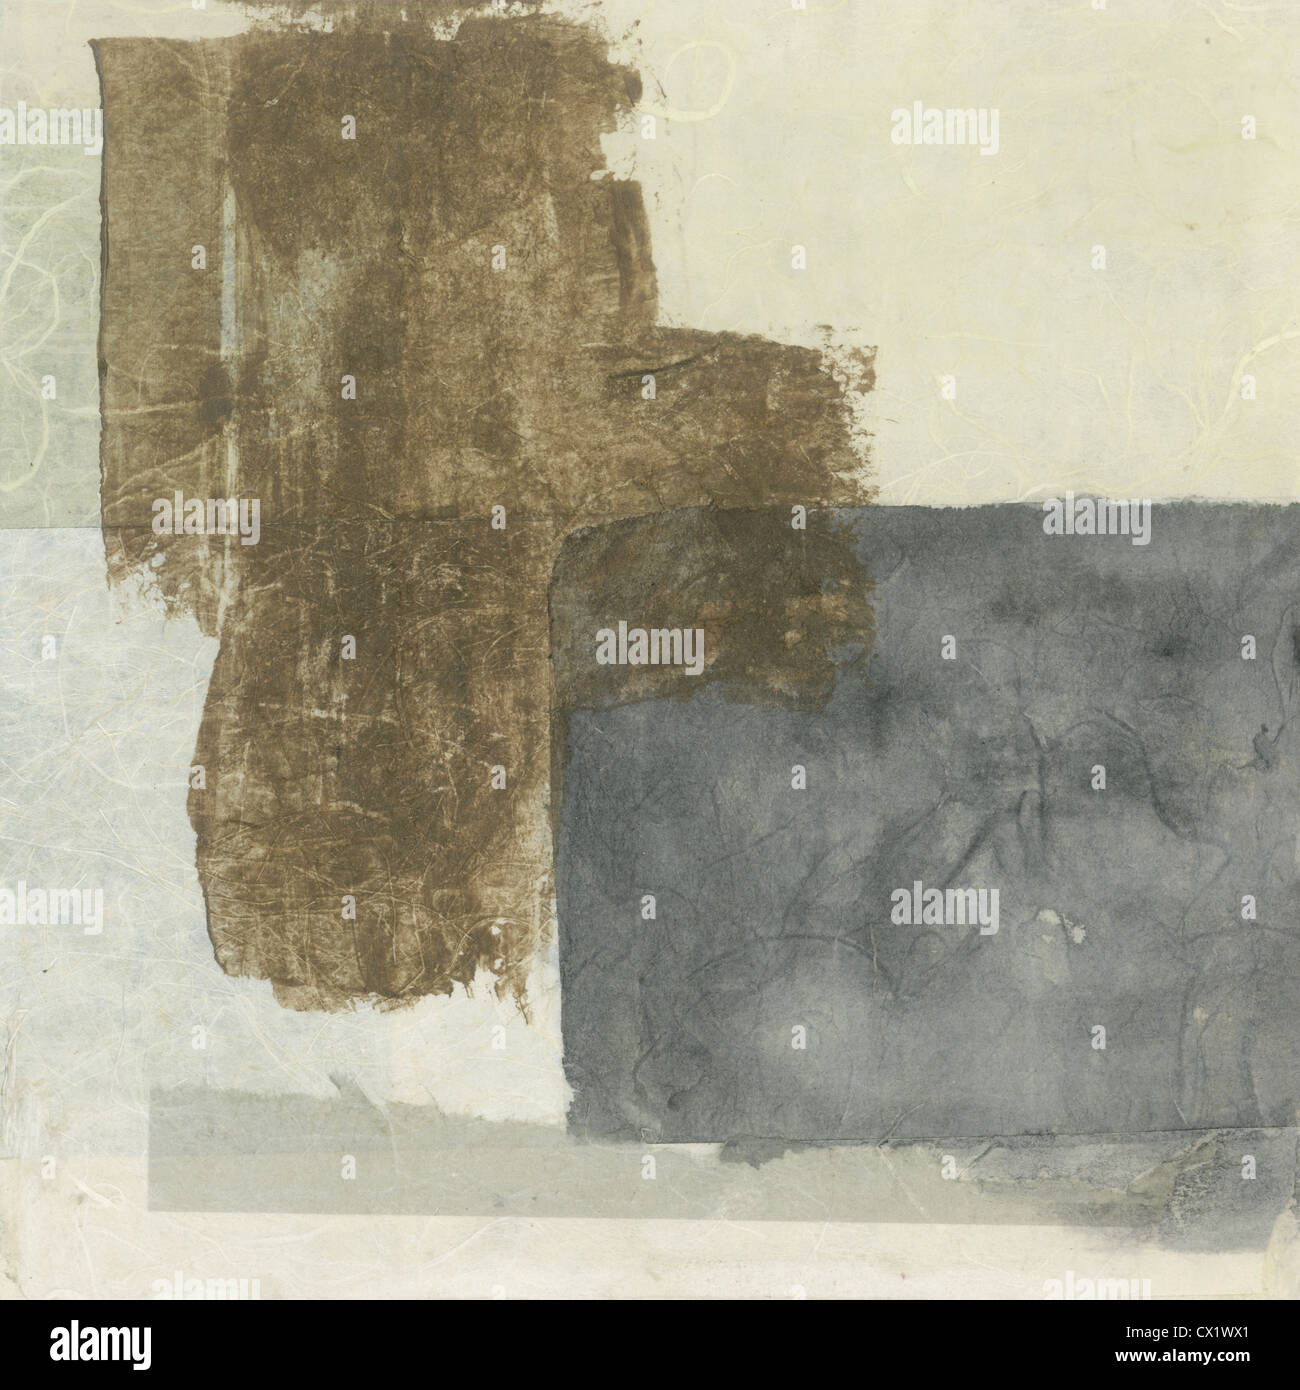 Abstract grey and brown tones textural paper collage painting. - Stock Image